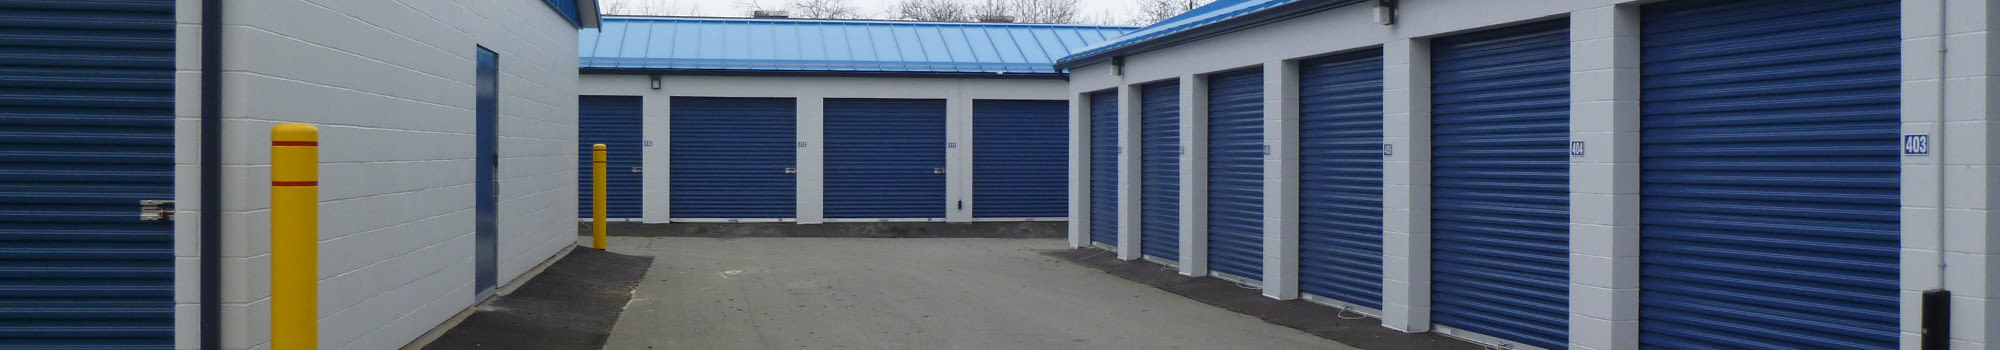 Budget Self Storage Reviews